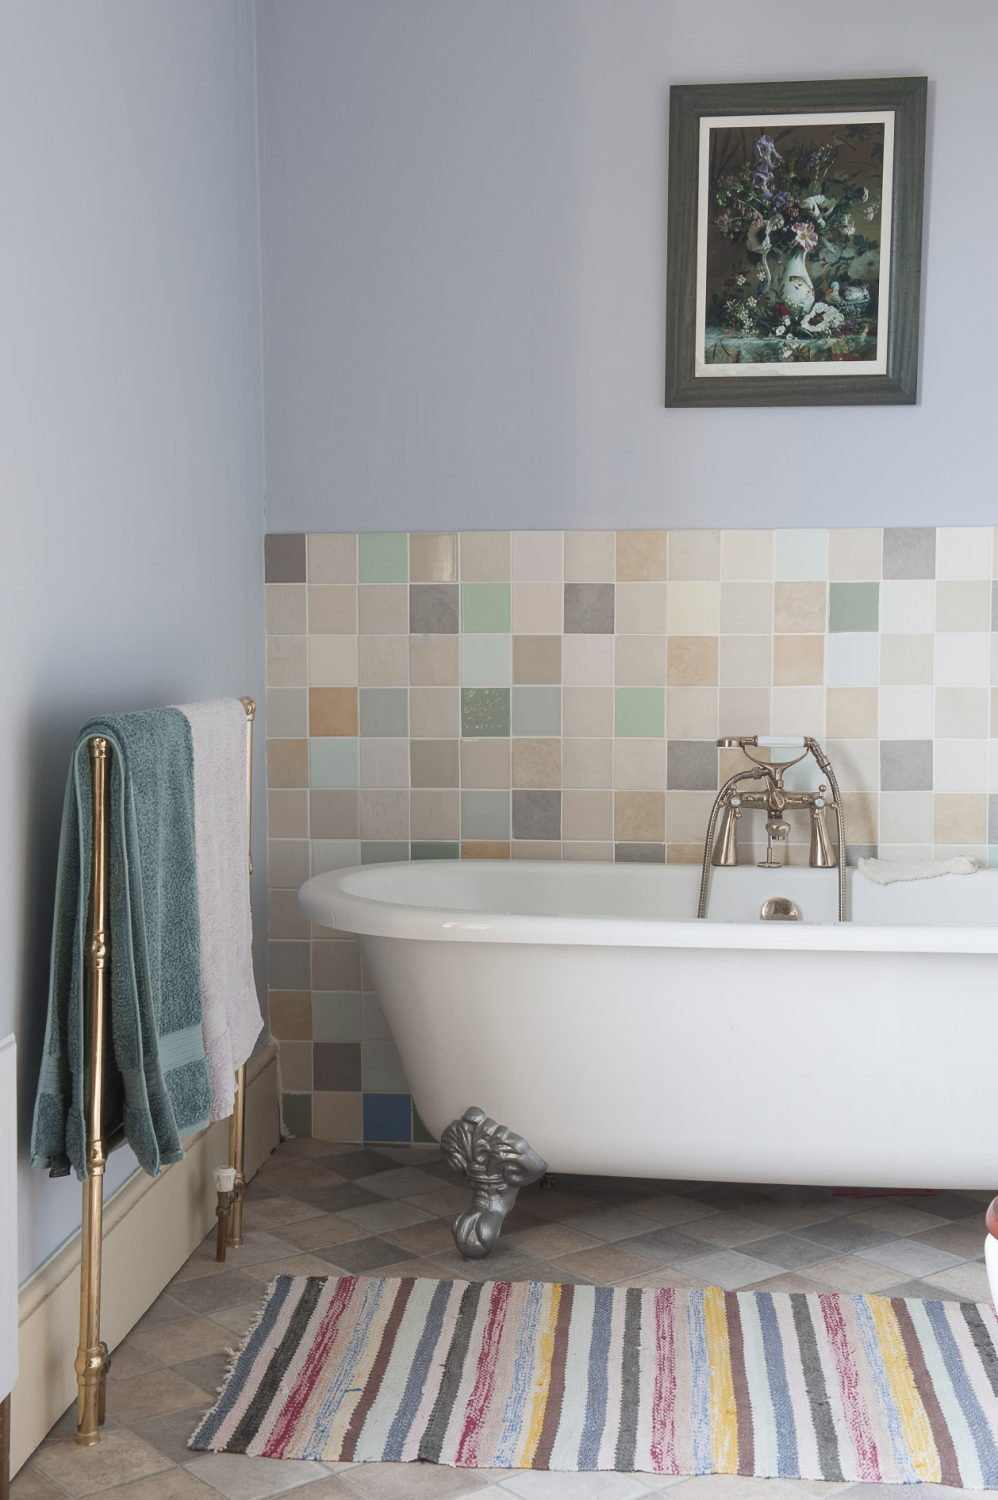 In the bathroom, floor tiles in muted earthy tones complement the small square pastel wall tiles that run behind the freestanding bath and basin